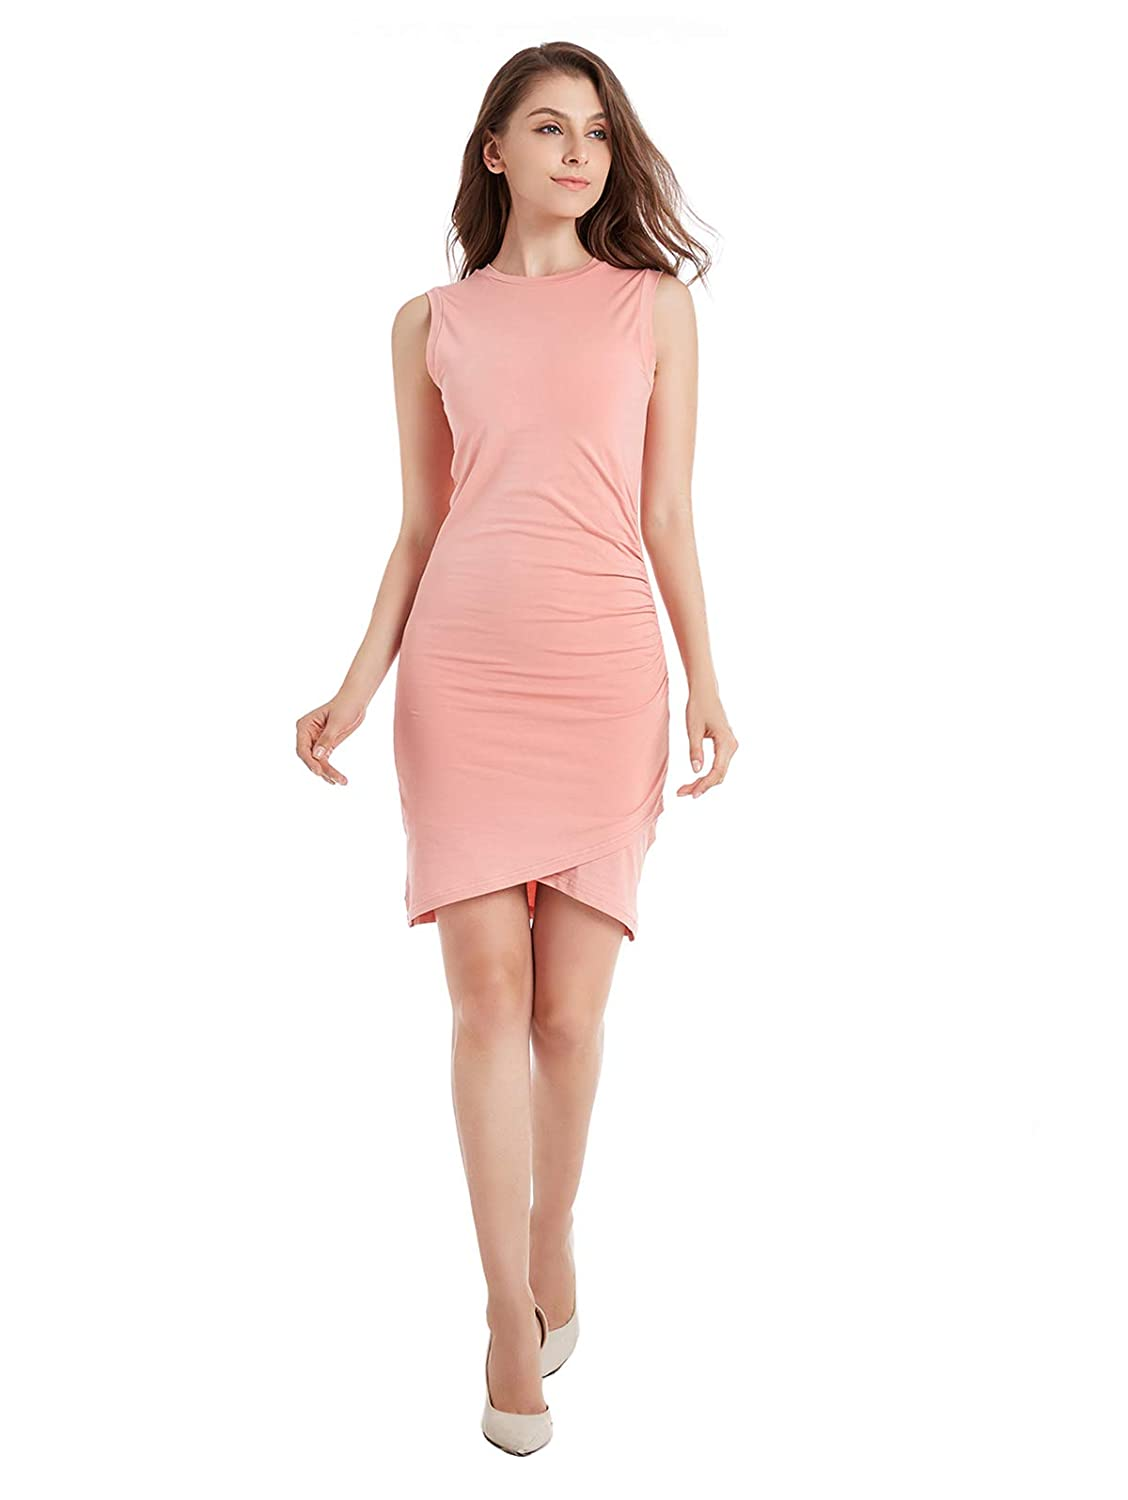 ZURIFFE Women s Summer Sleeveless Ruched Jersey Bodycon Tulip Midi Tank  Sheath Dress at Amazon Women s Clothing store  f1fbce5d6